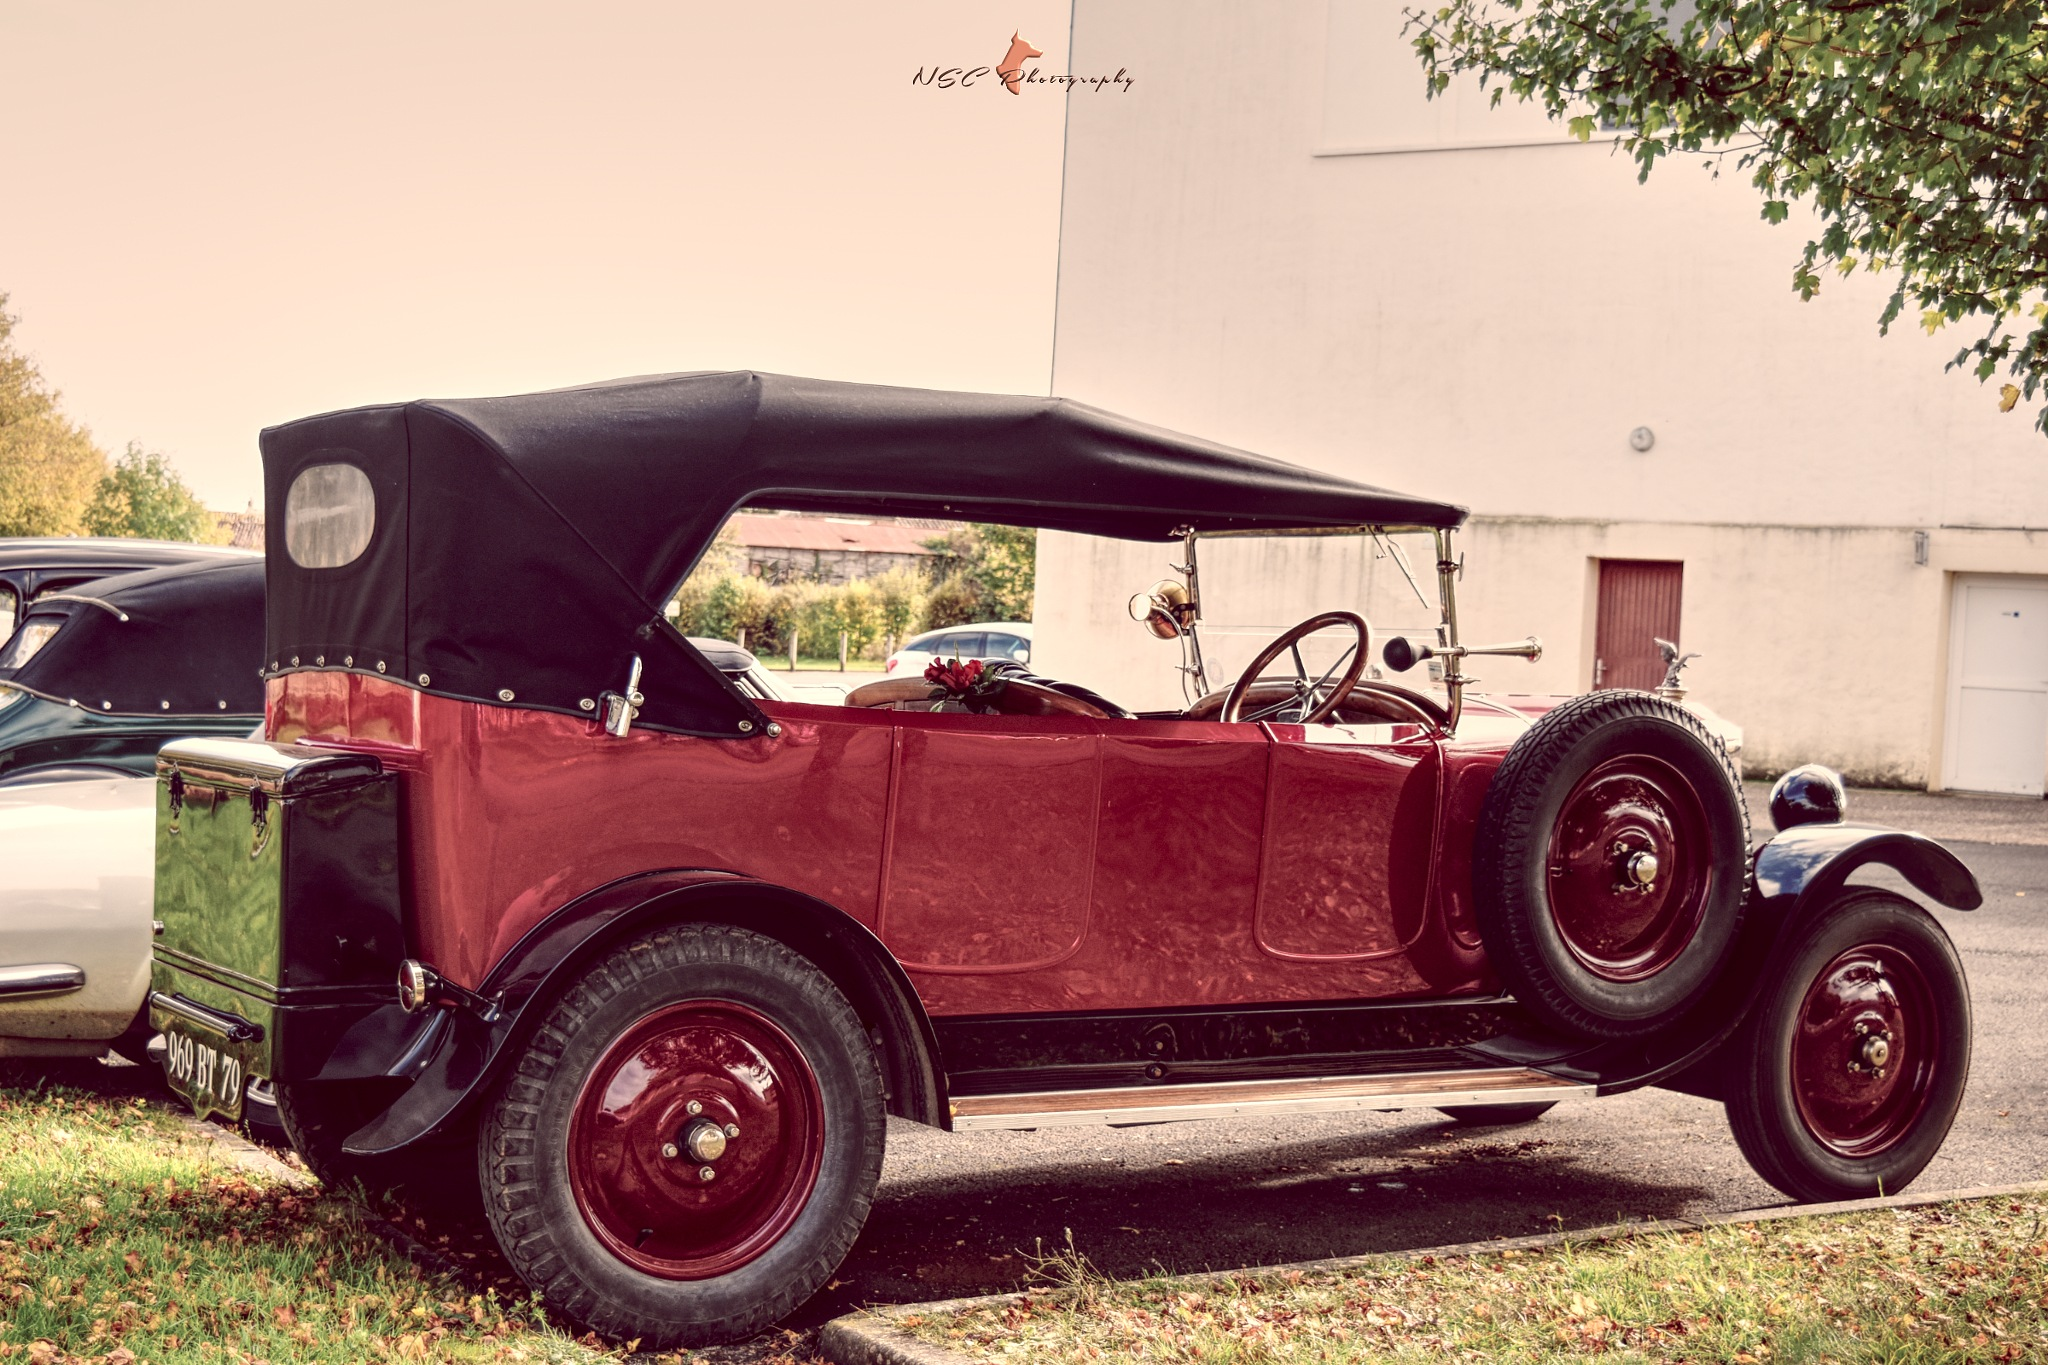 Old Cars024 by NSC Photography